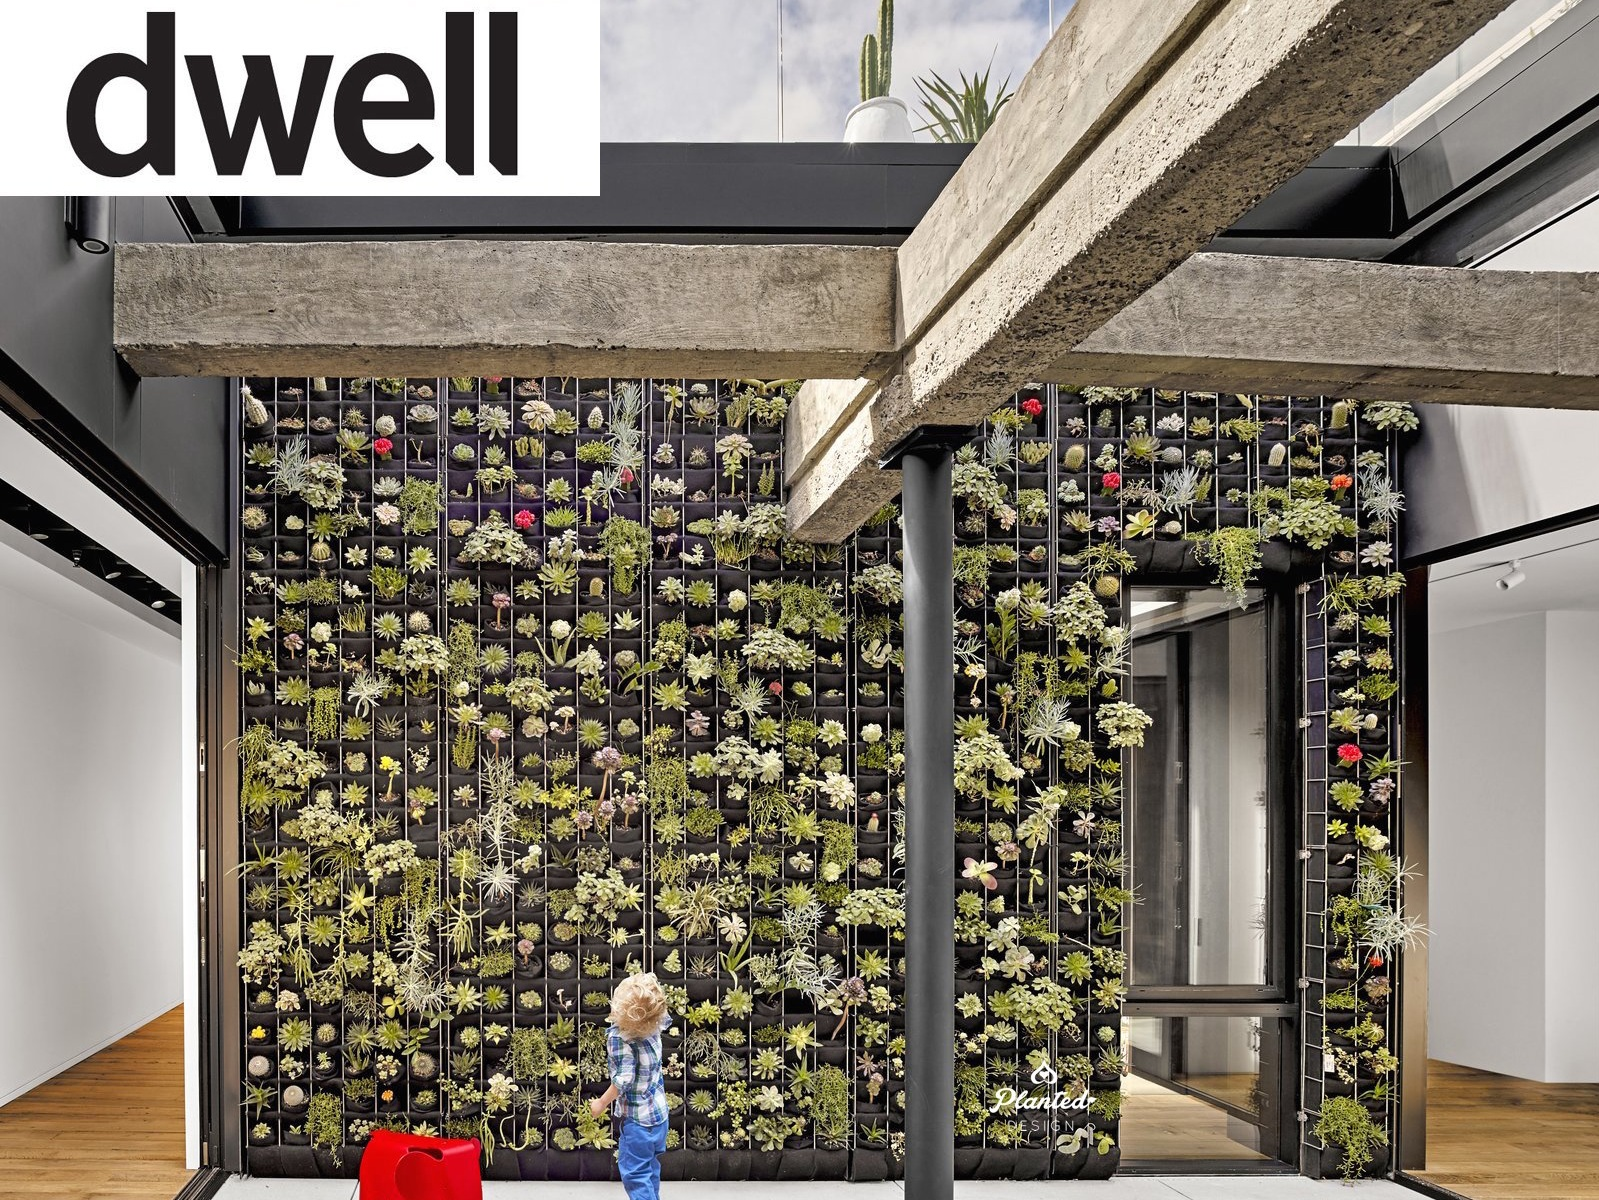 Residential  - Dwell Feature Living Wall